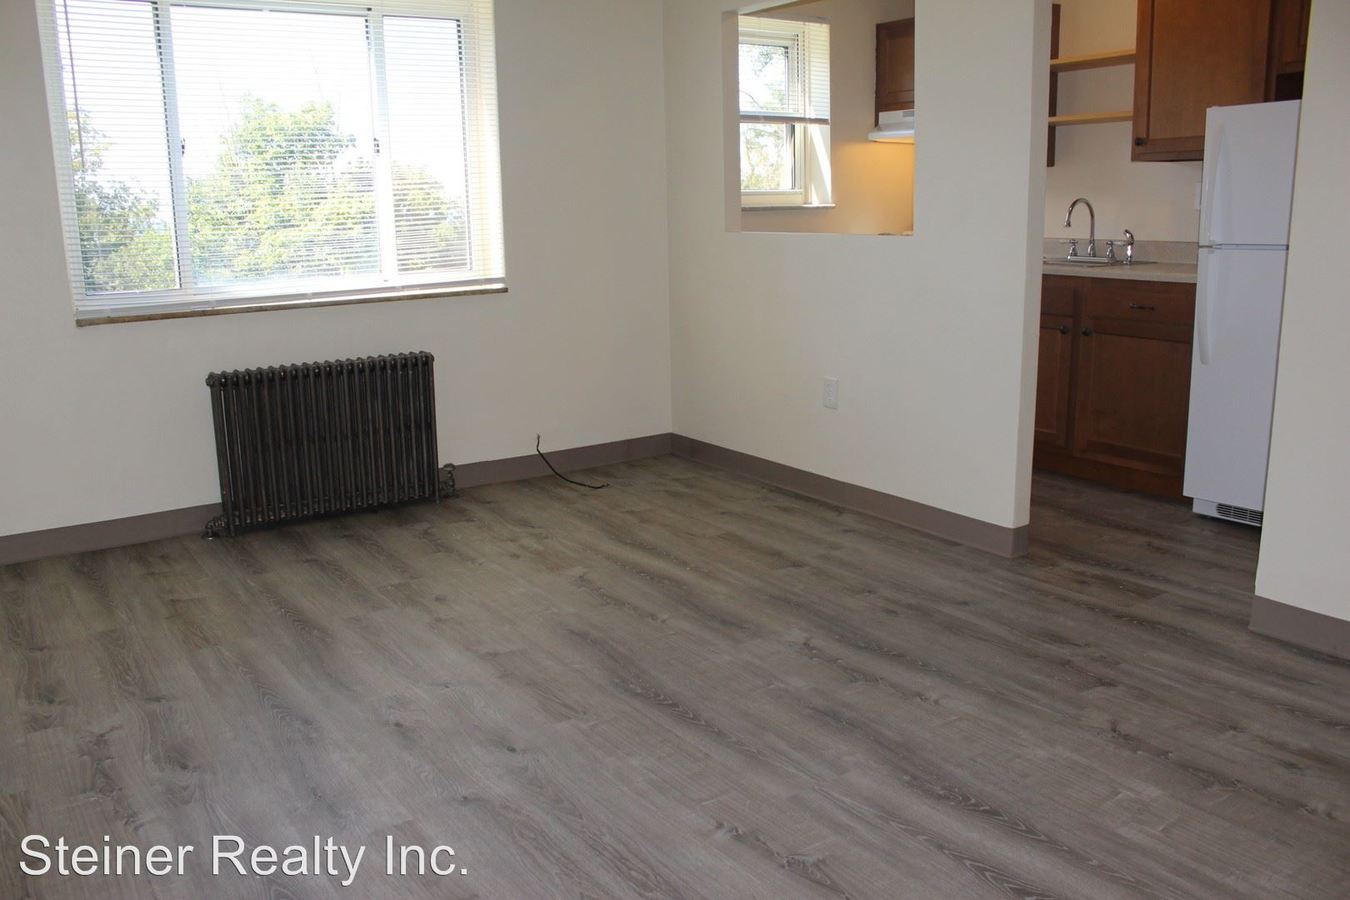 1 Bedroom 1 Bathroom Apartment for rent at 1025 W. Findley Drive in Wilkinsburg, PA